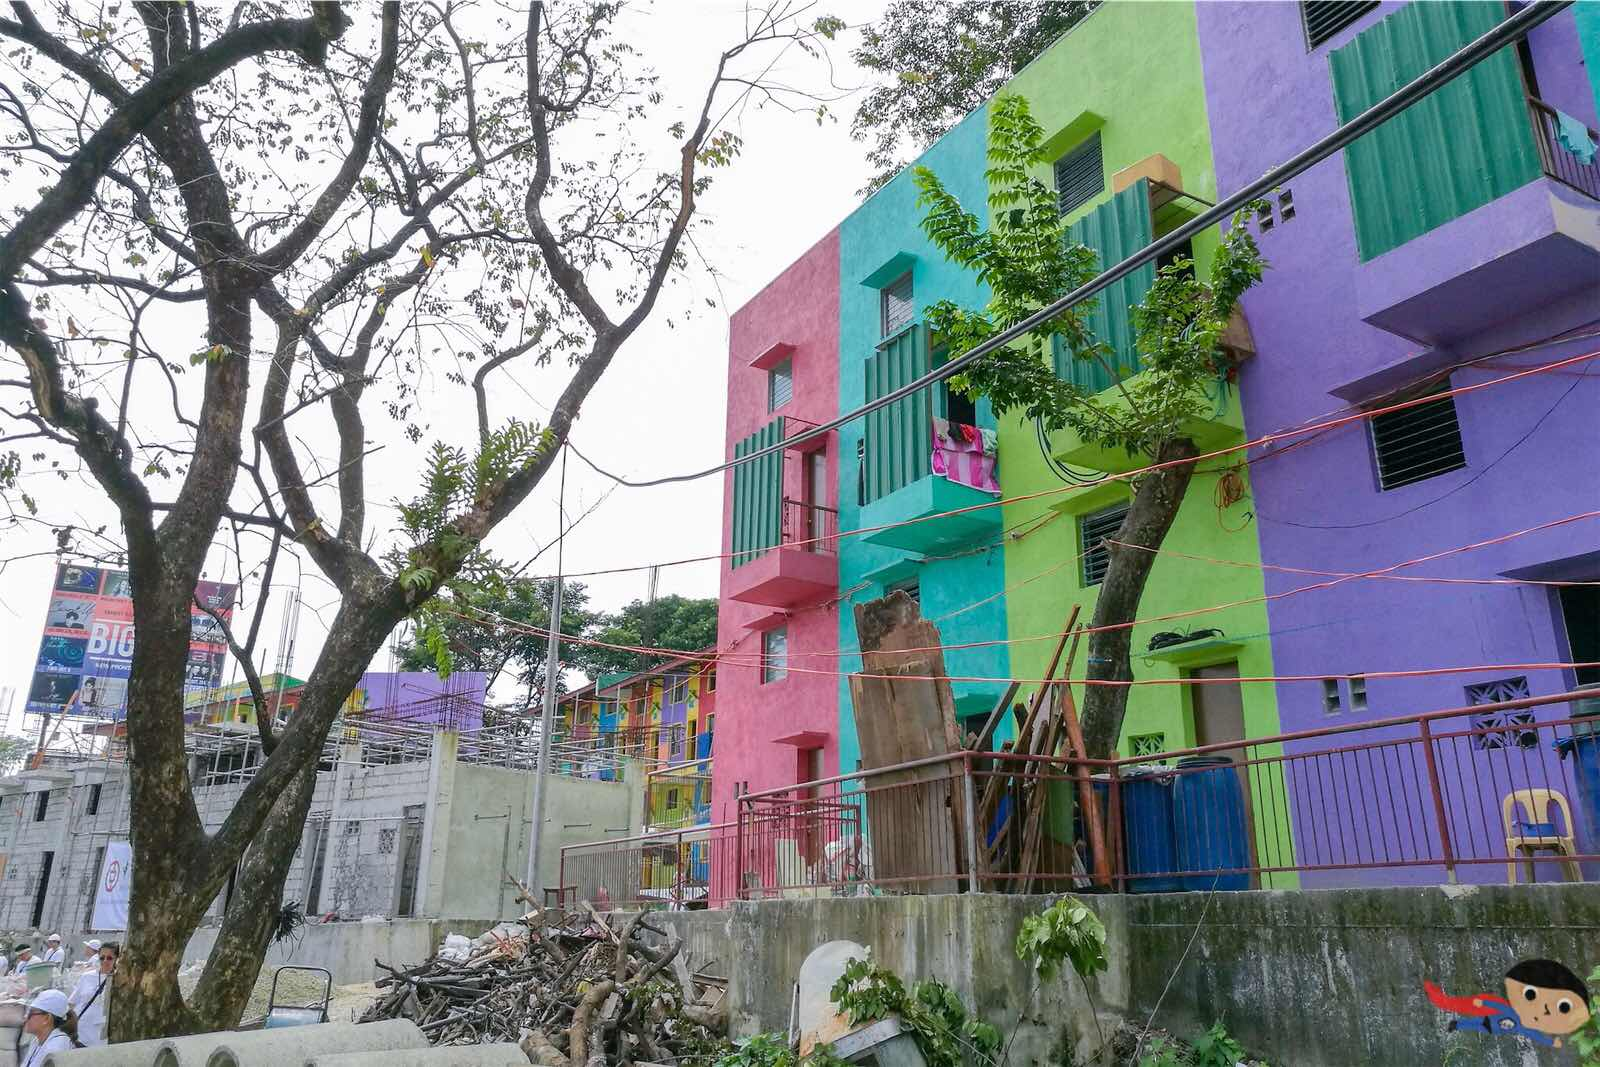 Colorful homes in Gawad Kalinga Community in Quezon City